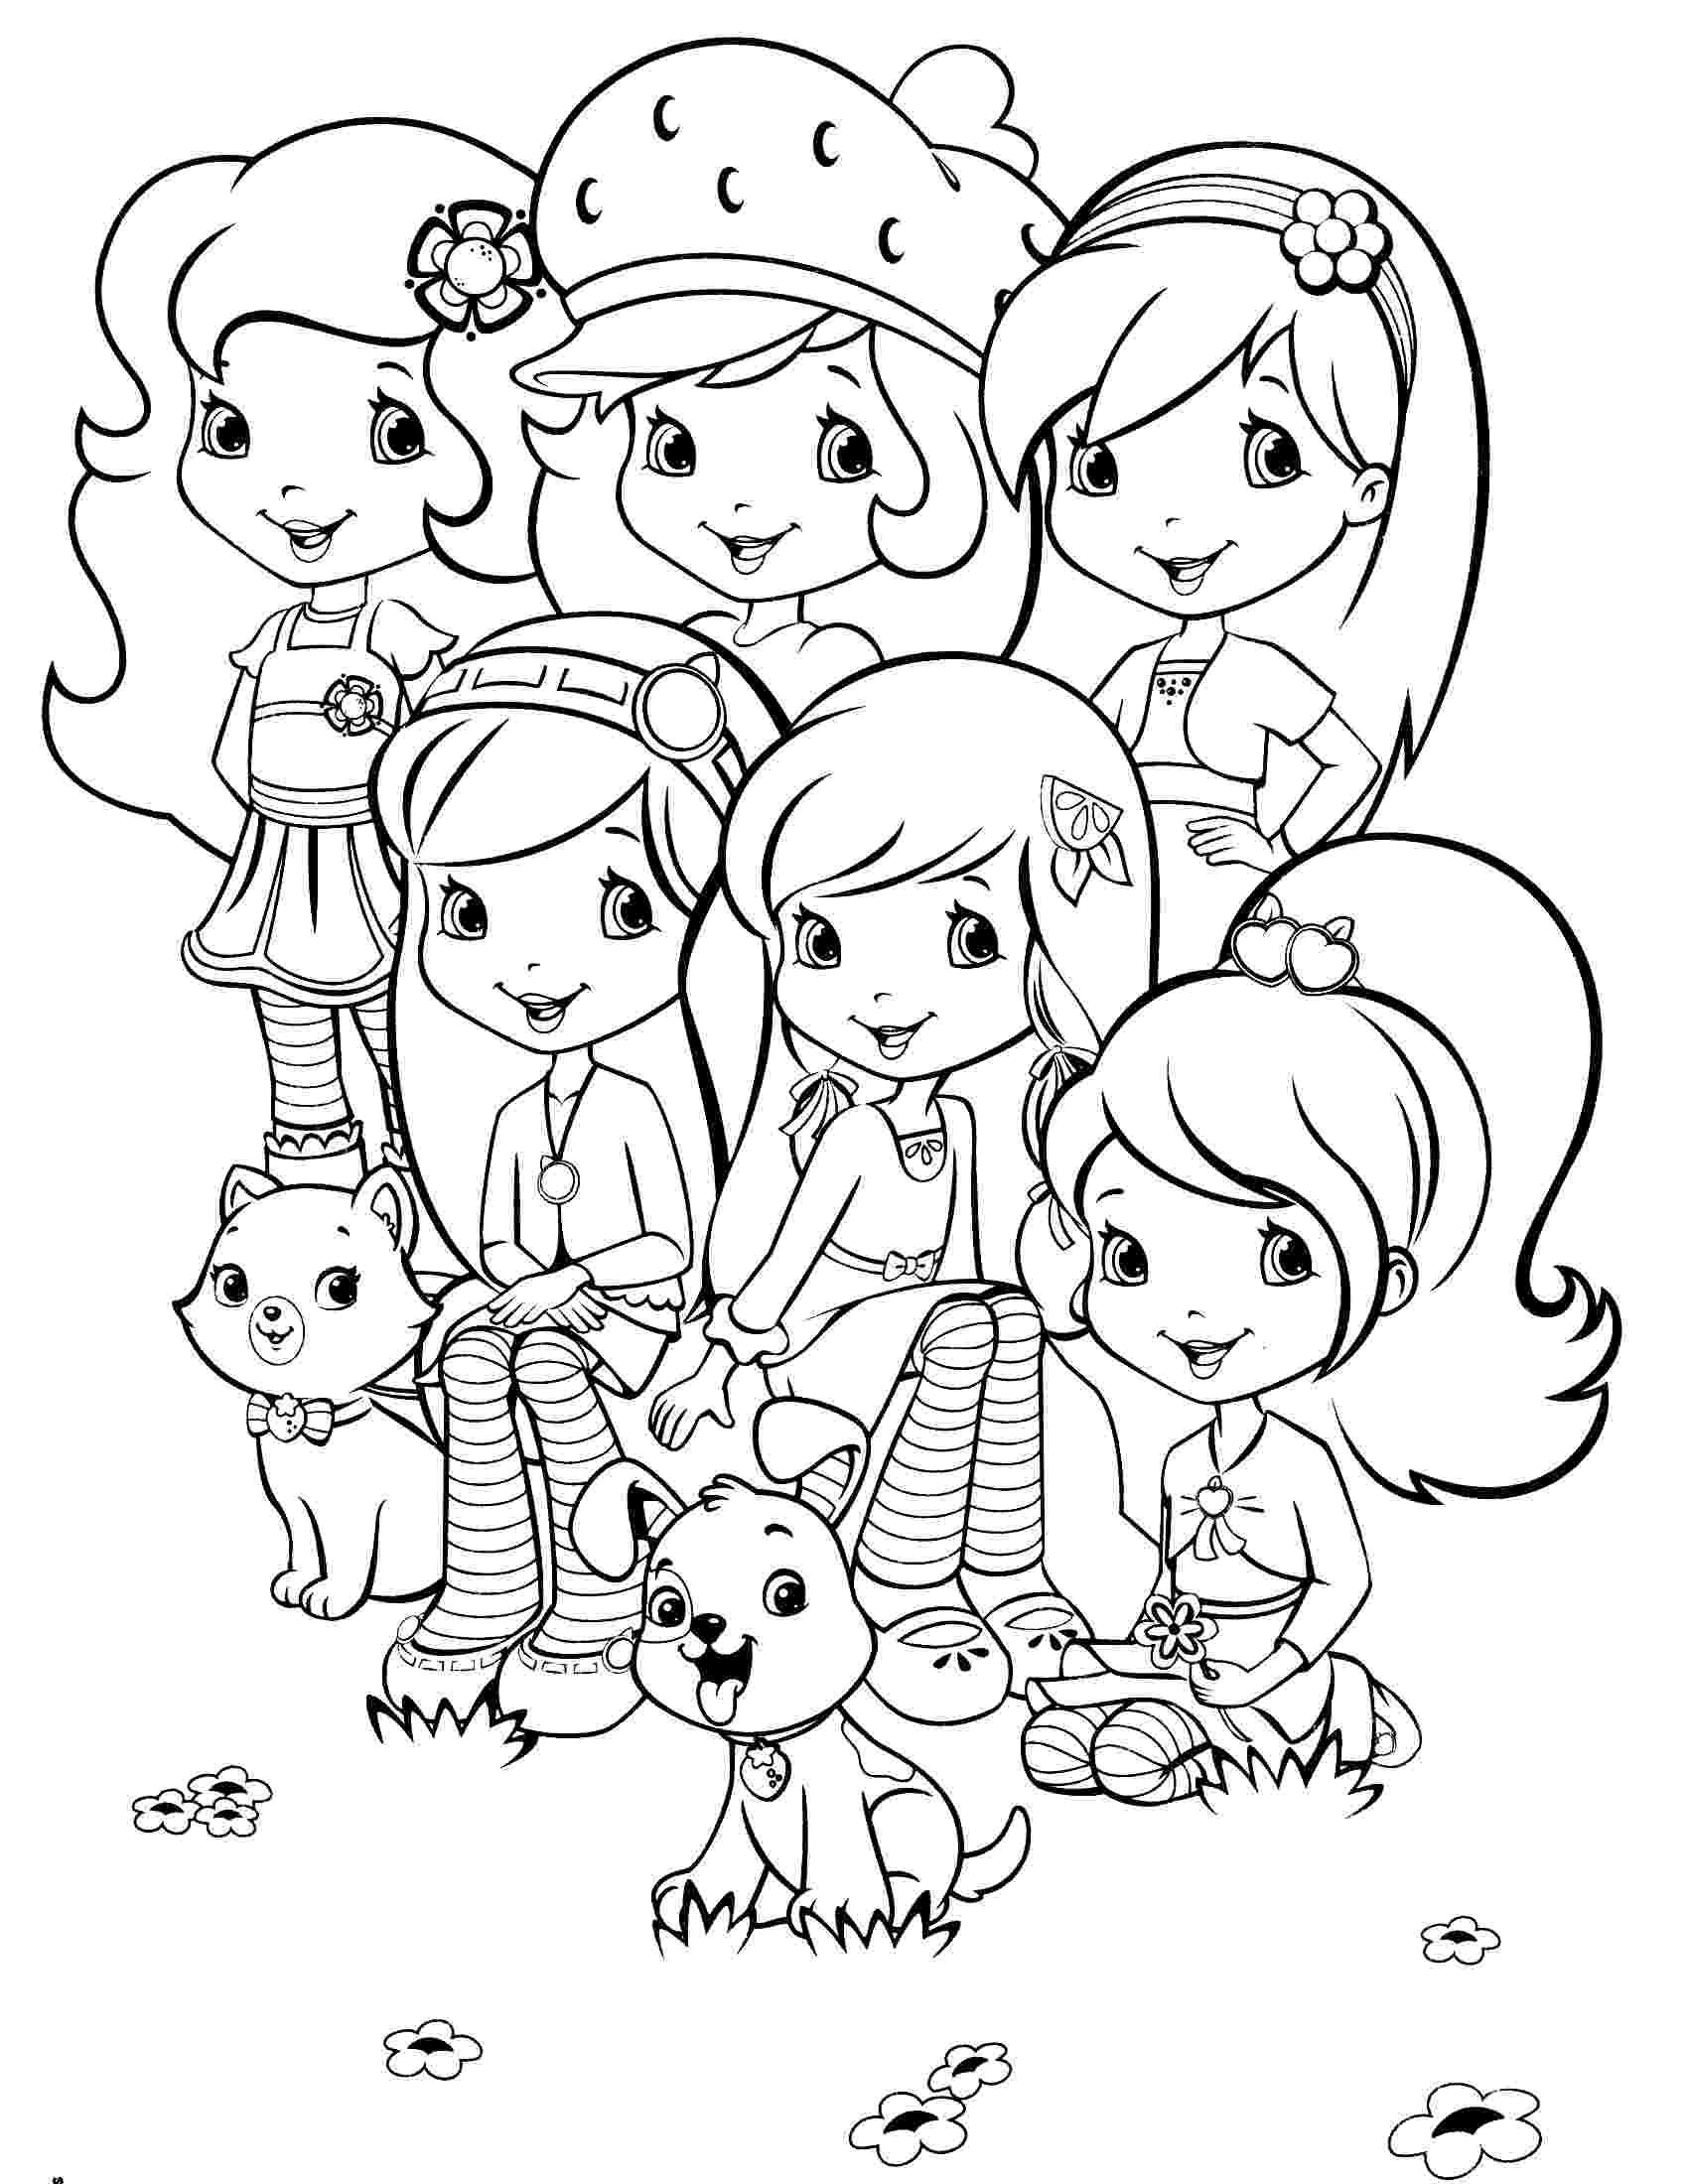 strawberry shortcake and friends coloring pages strawberry and cherry coloring page coloring pages friends shortcake coloring strawberry pages and